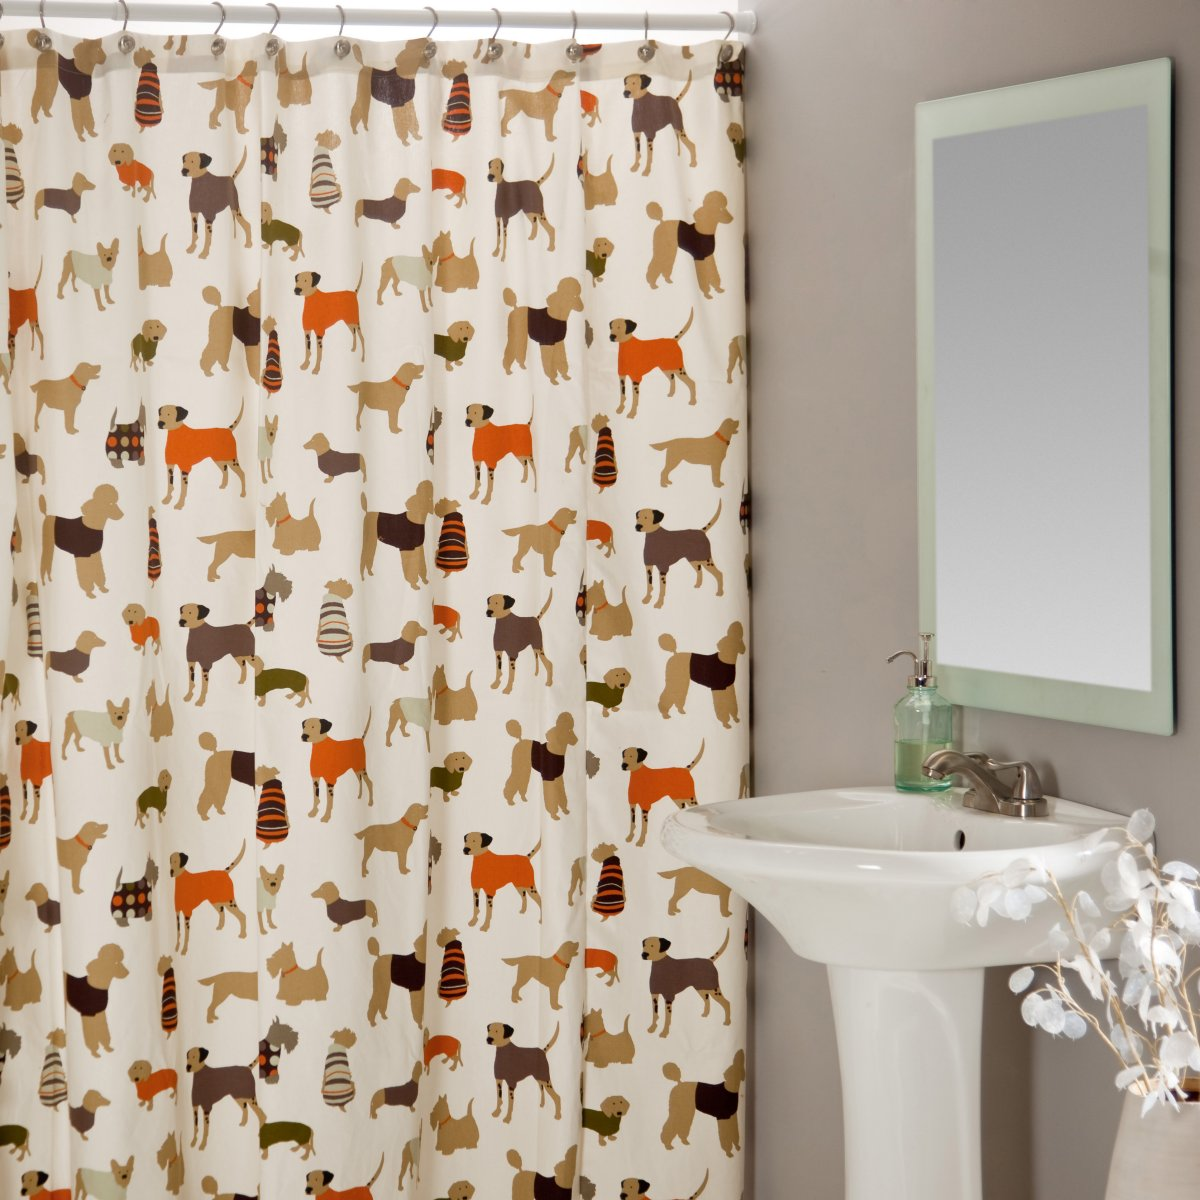 Autumn Vanilla Picture: Autumn Shower Curtain